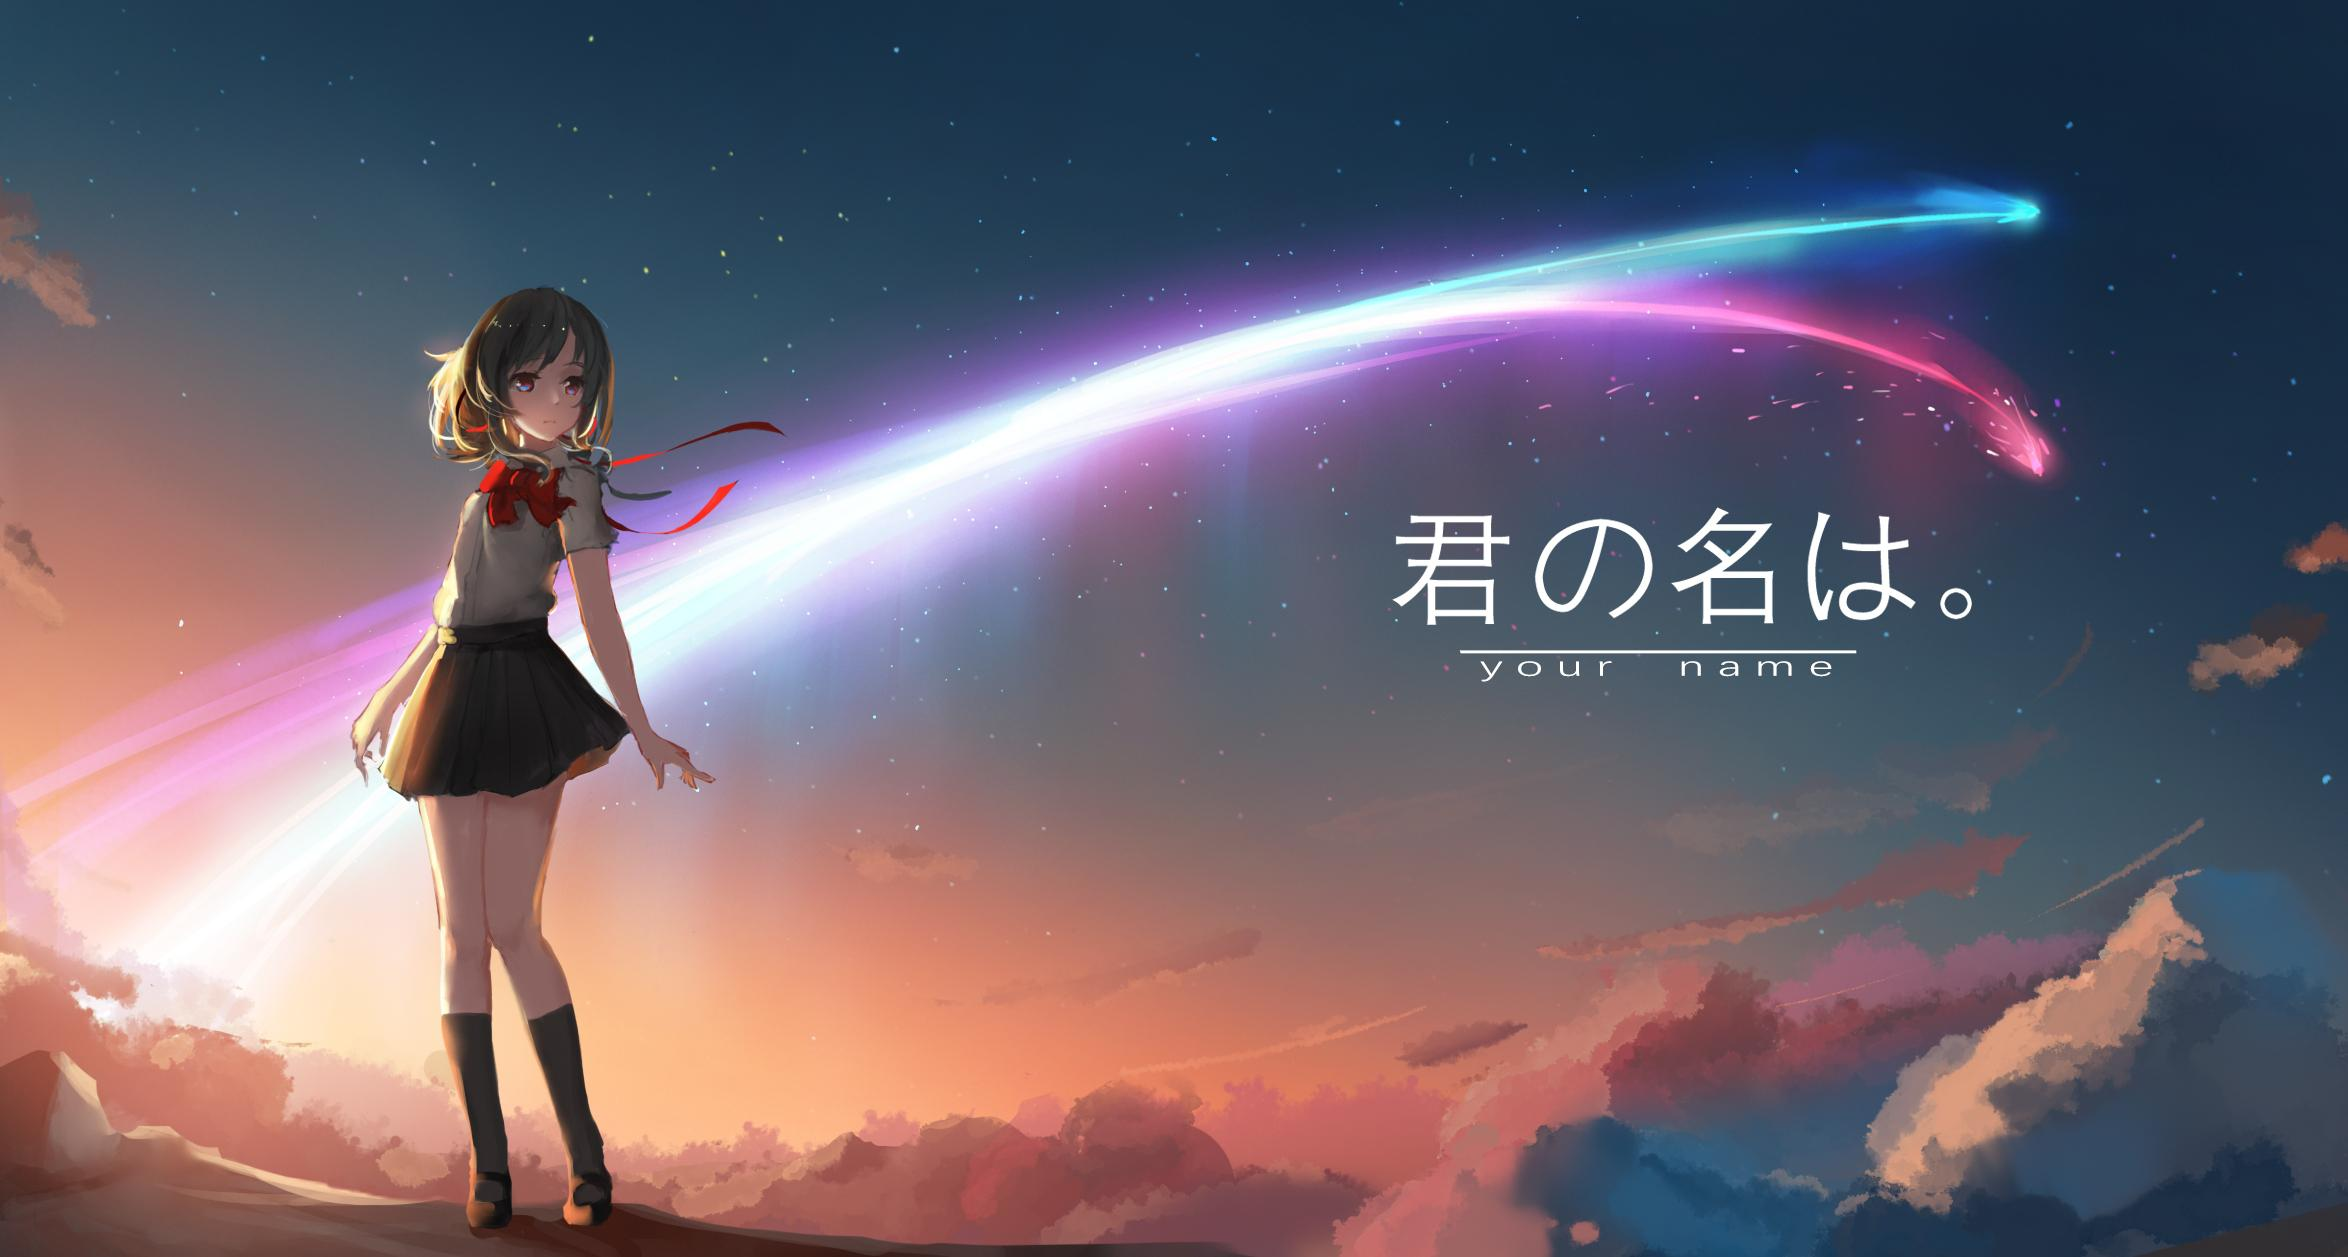 Film Cartoon - Your Name - Kimi no Na wa (love anime story) - Mitsuha - comet Tianmat